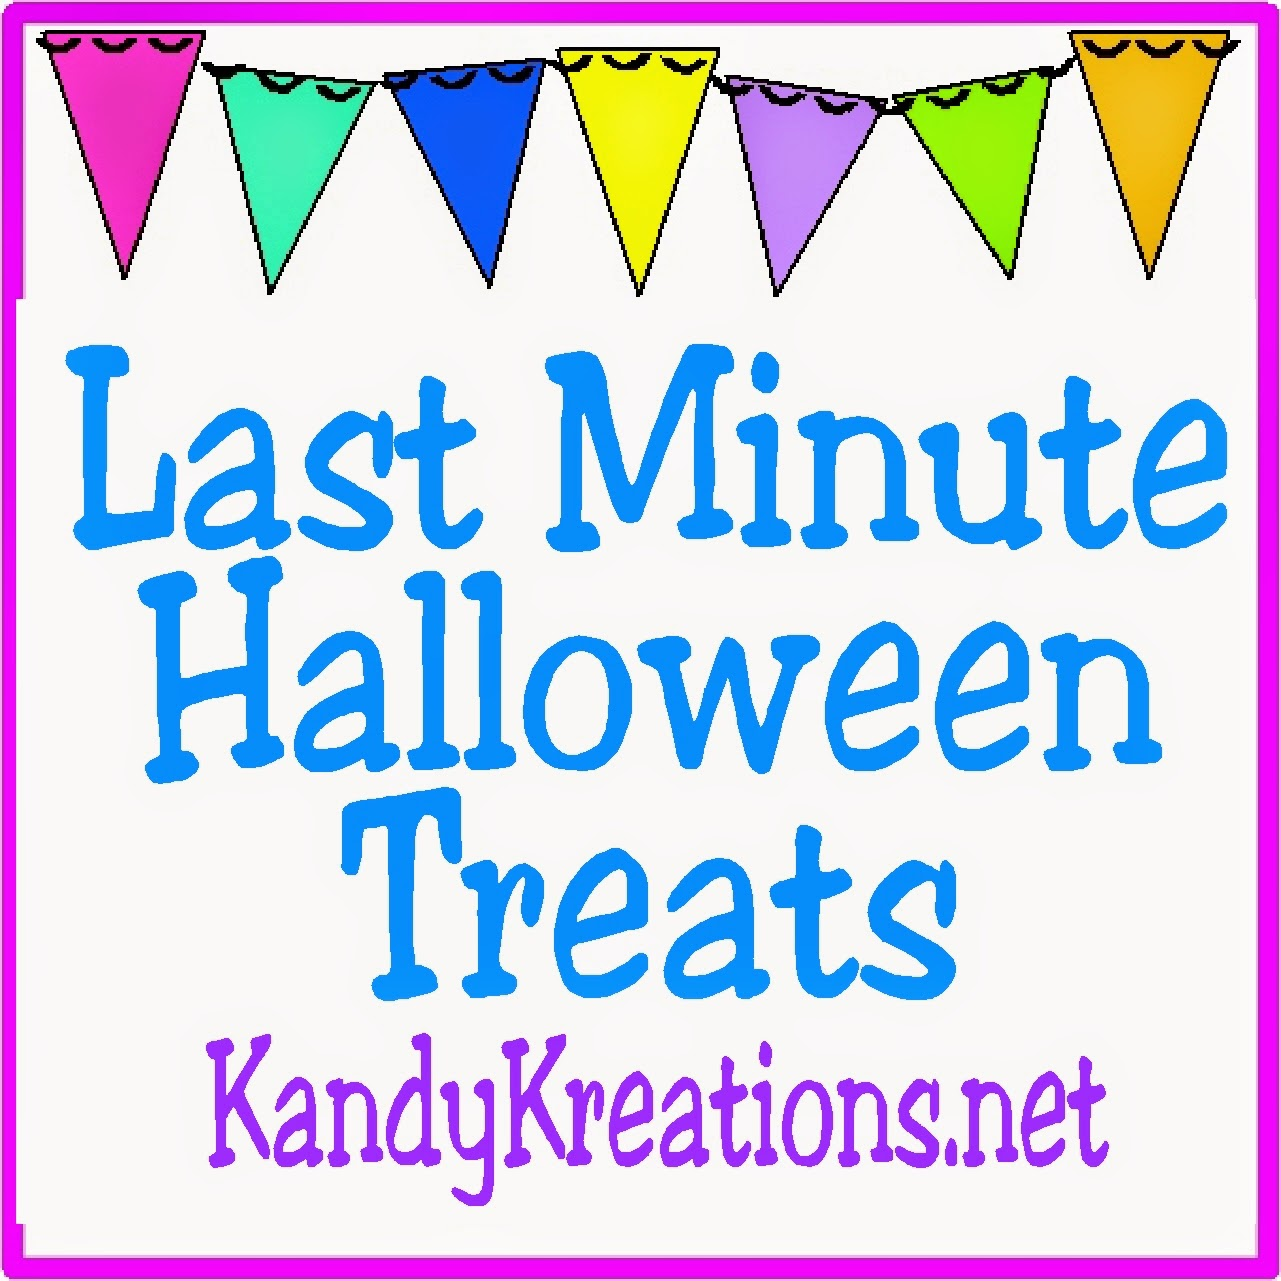 There's not much time left so enjoy these last minute Halloween treats that are perfect for your Halloween party or just for hanging out with your family.  These Halloween treats are sure to win over the ghosts and ghouls in your home today.